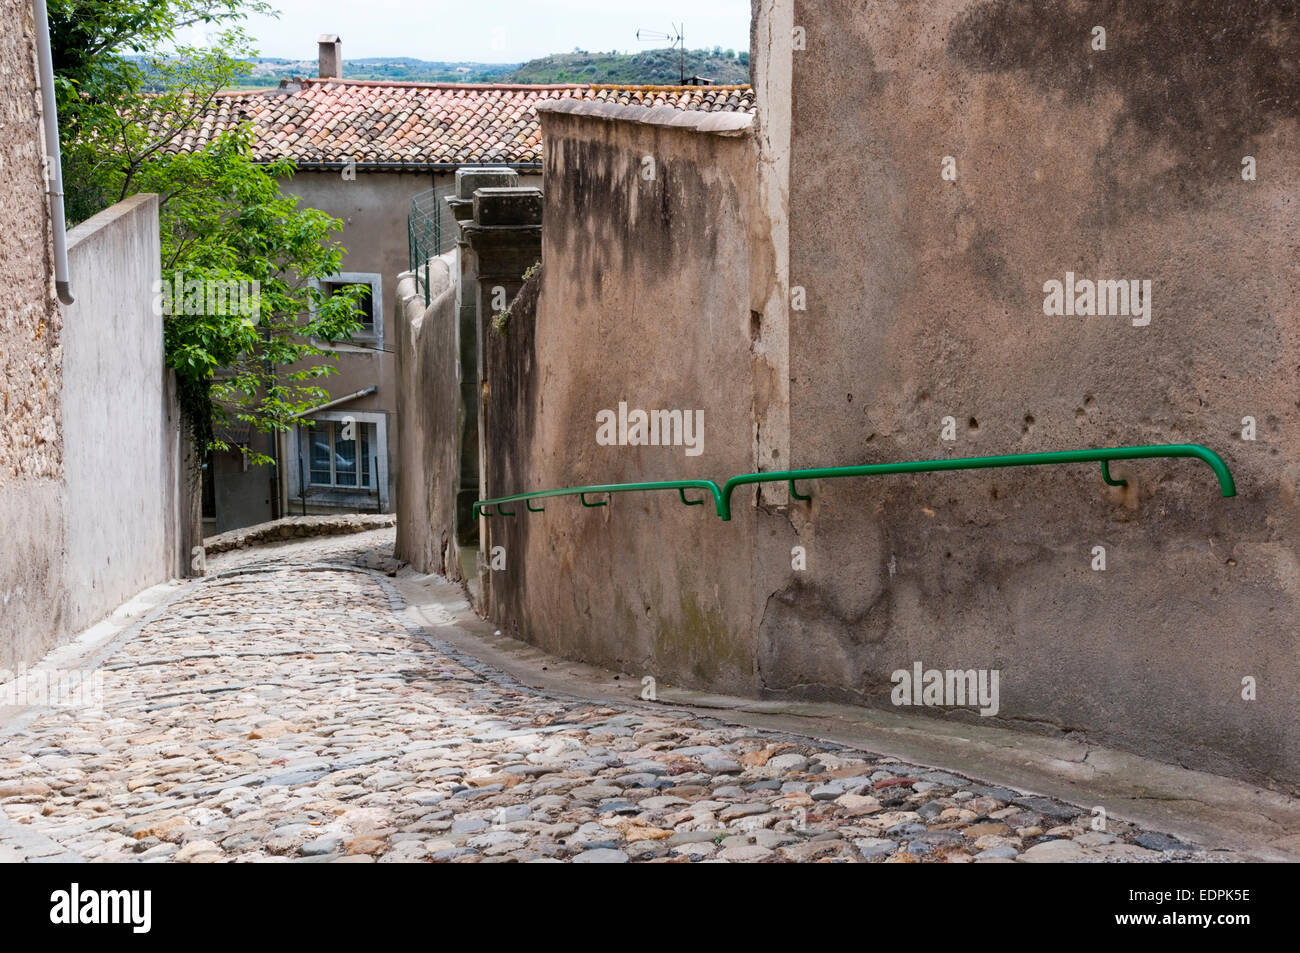 A steep cobbled street with a handrail in the small village of Puissalicon, Languedoc, France.  An historic circulade - Stock Image